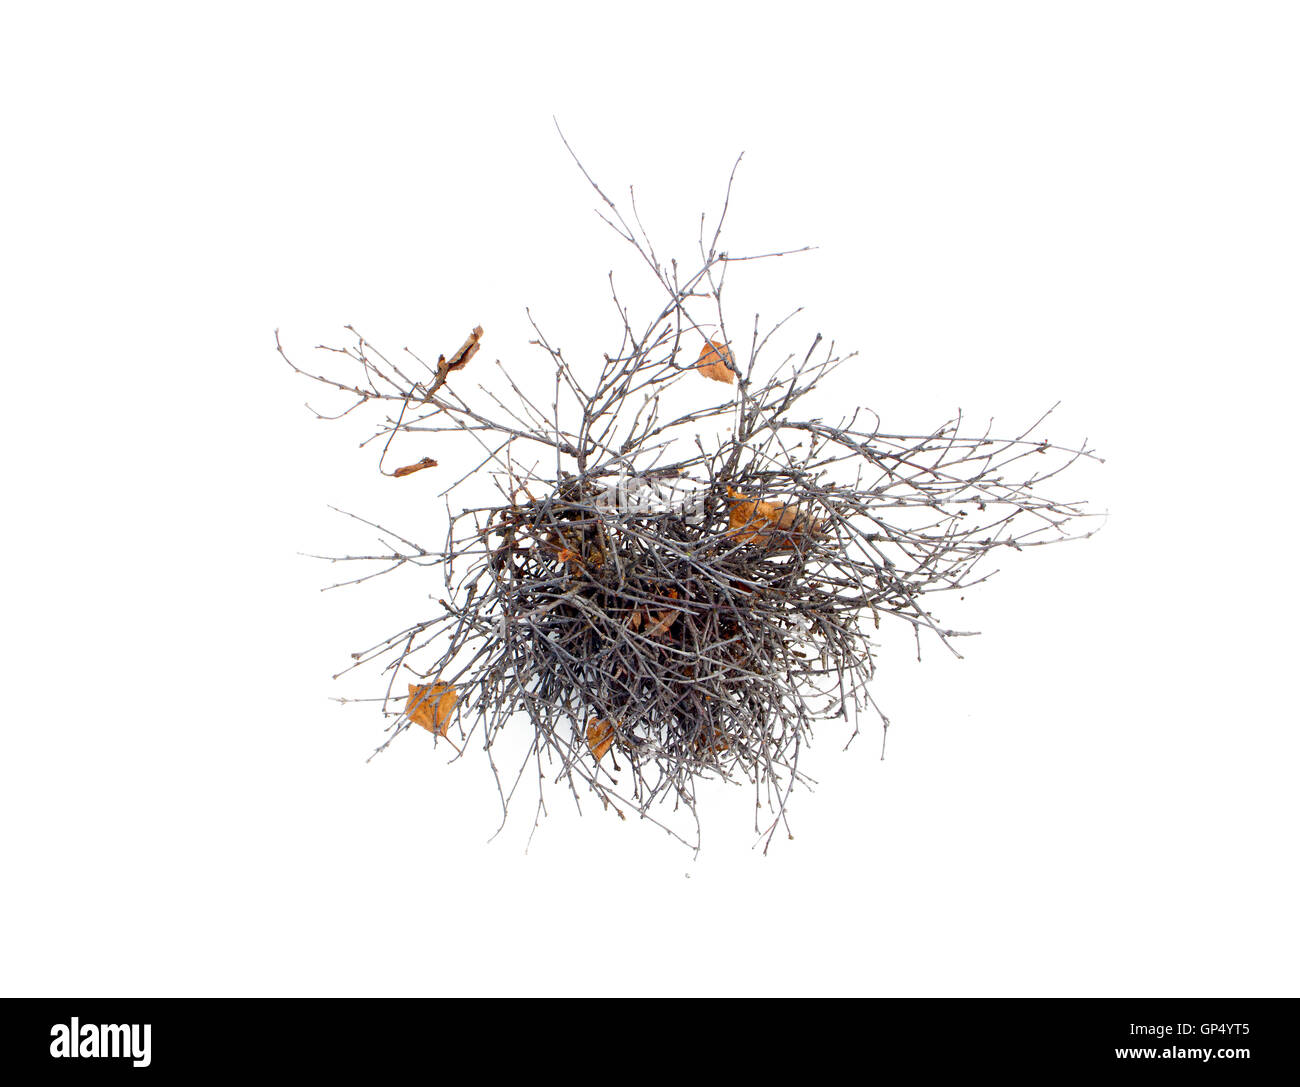 pathological growth of branches on a tree isolated - Stock Image